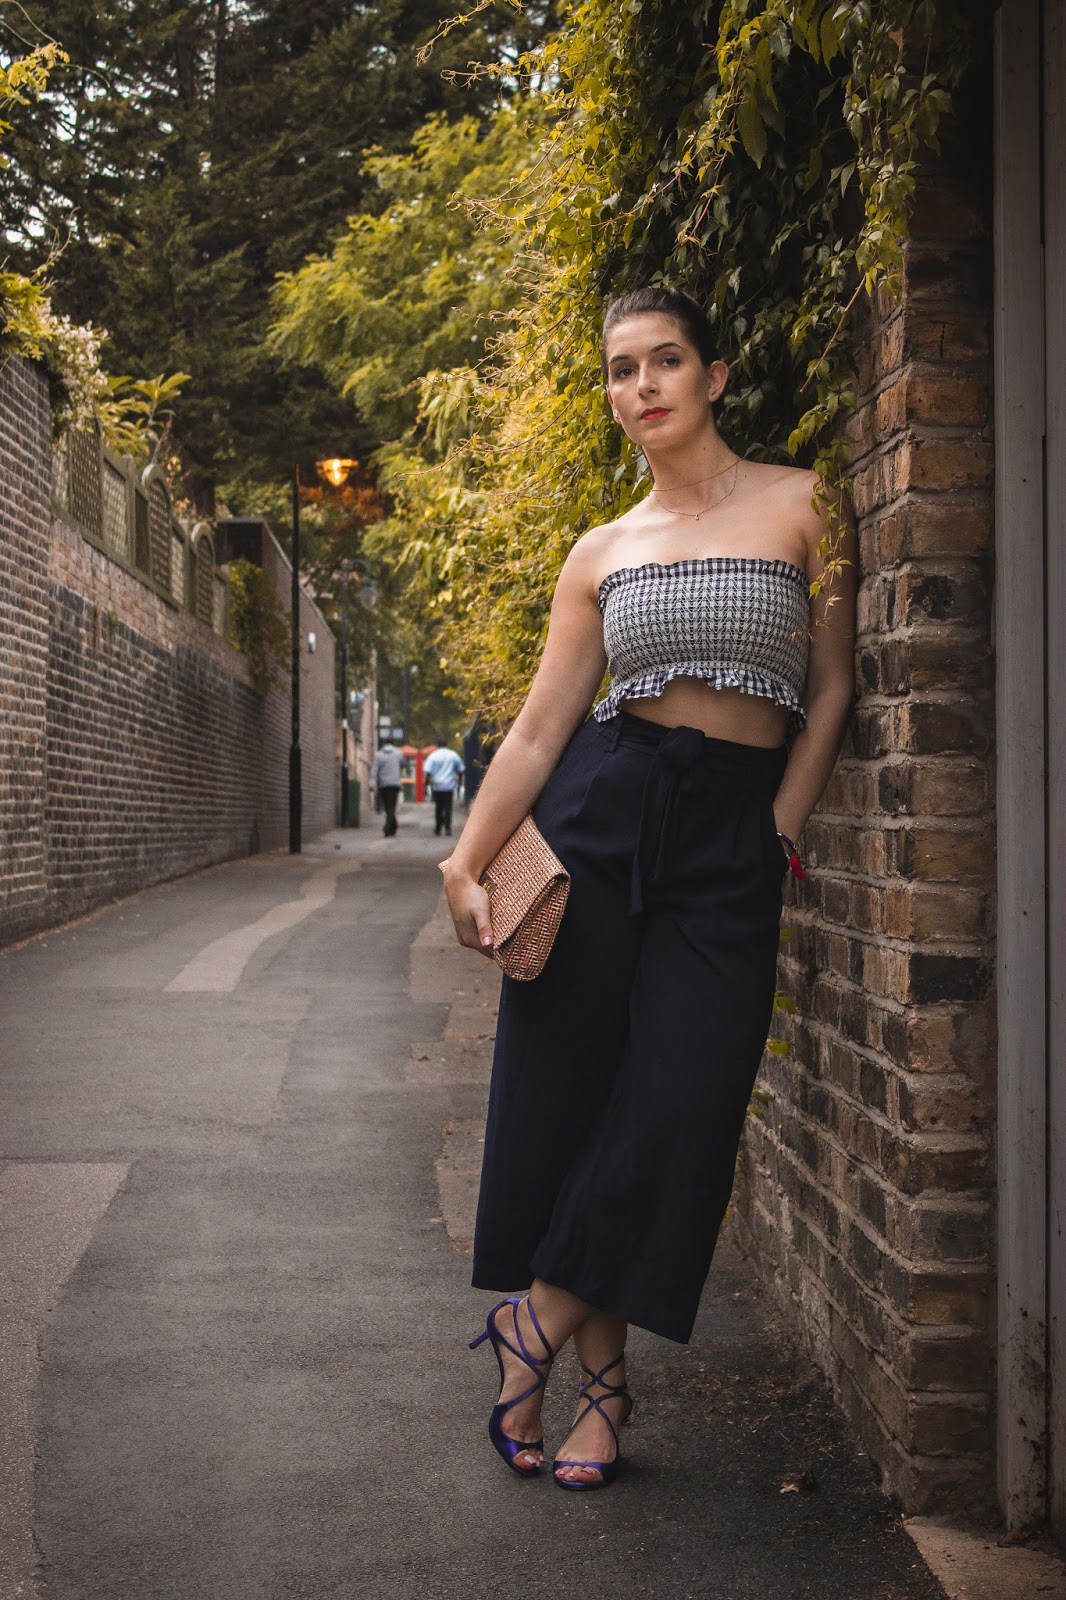 HOW TO WEAR A CROP TOP TO A NIGHT OUT? | OUTFIT